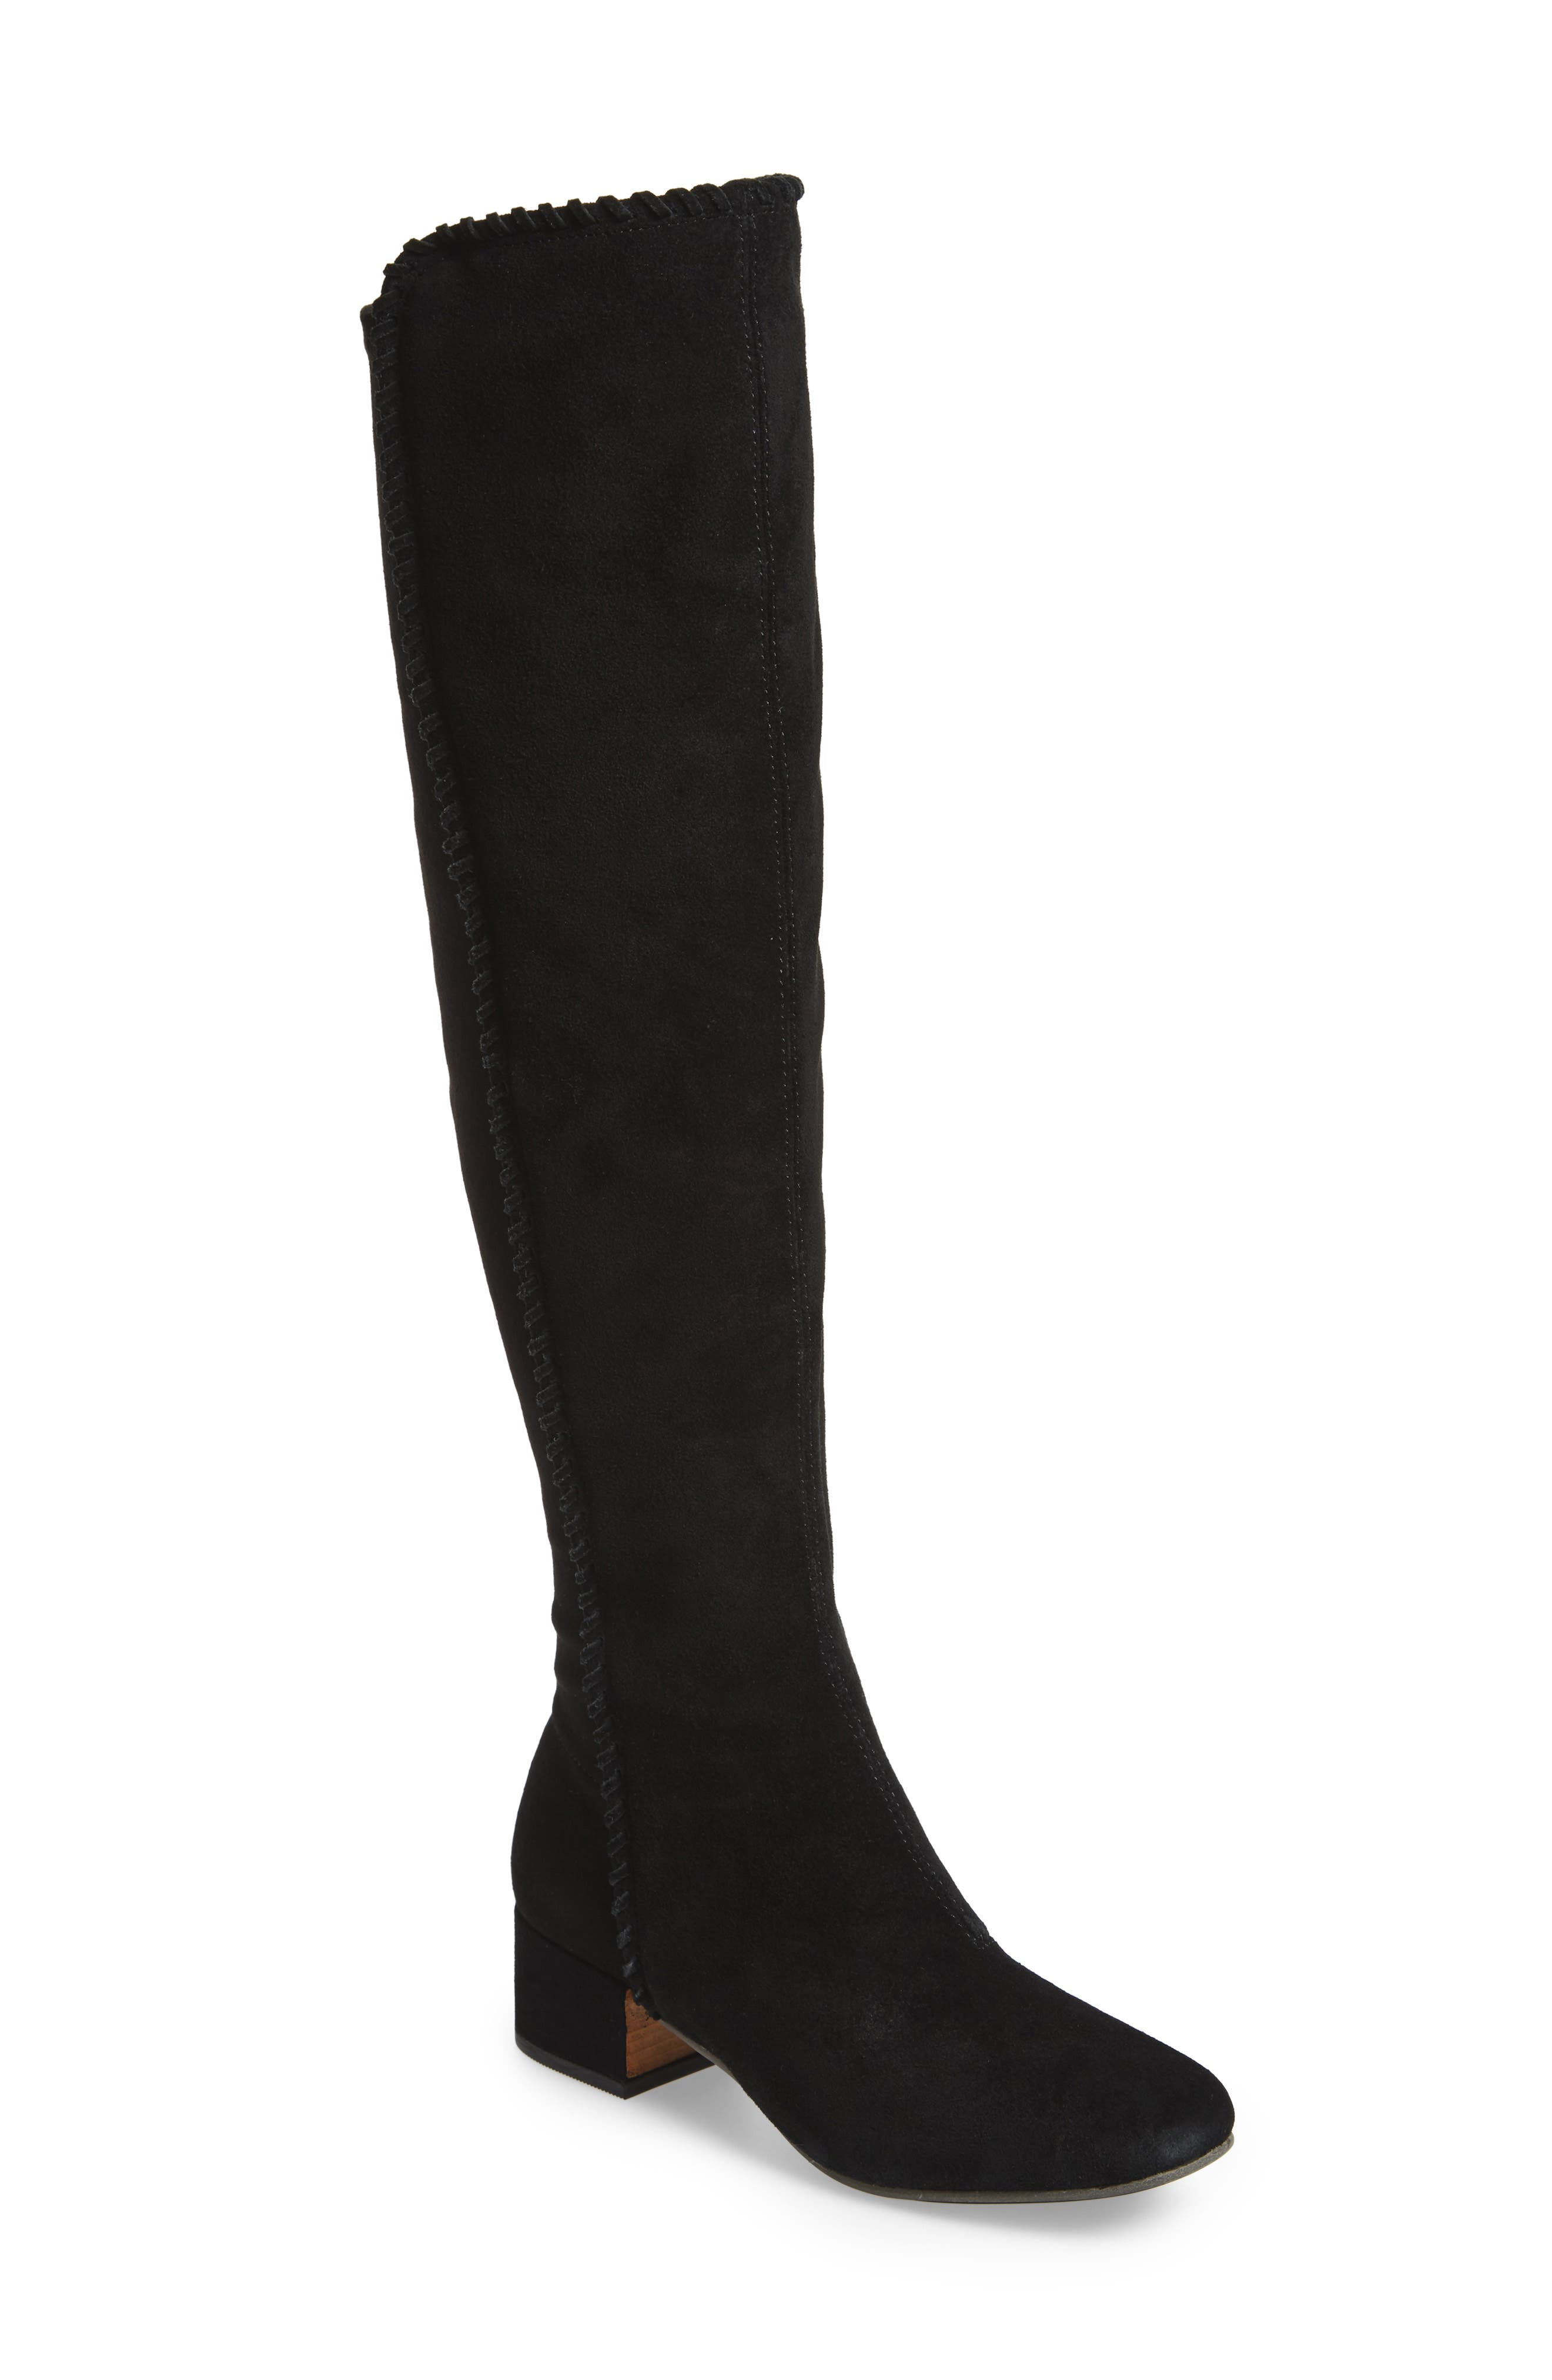 Gentle Souls Emery Over the Knee Boot,                             Main thumbnail 1, color,                             001